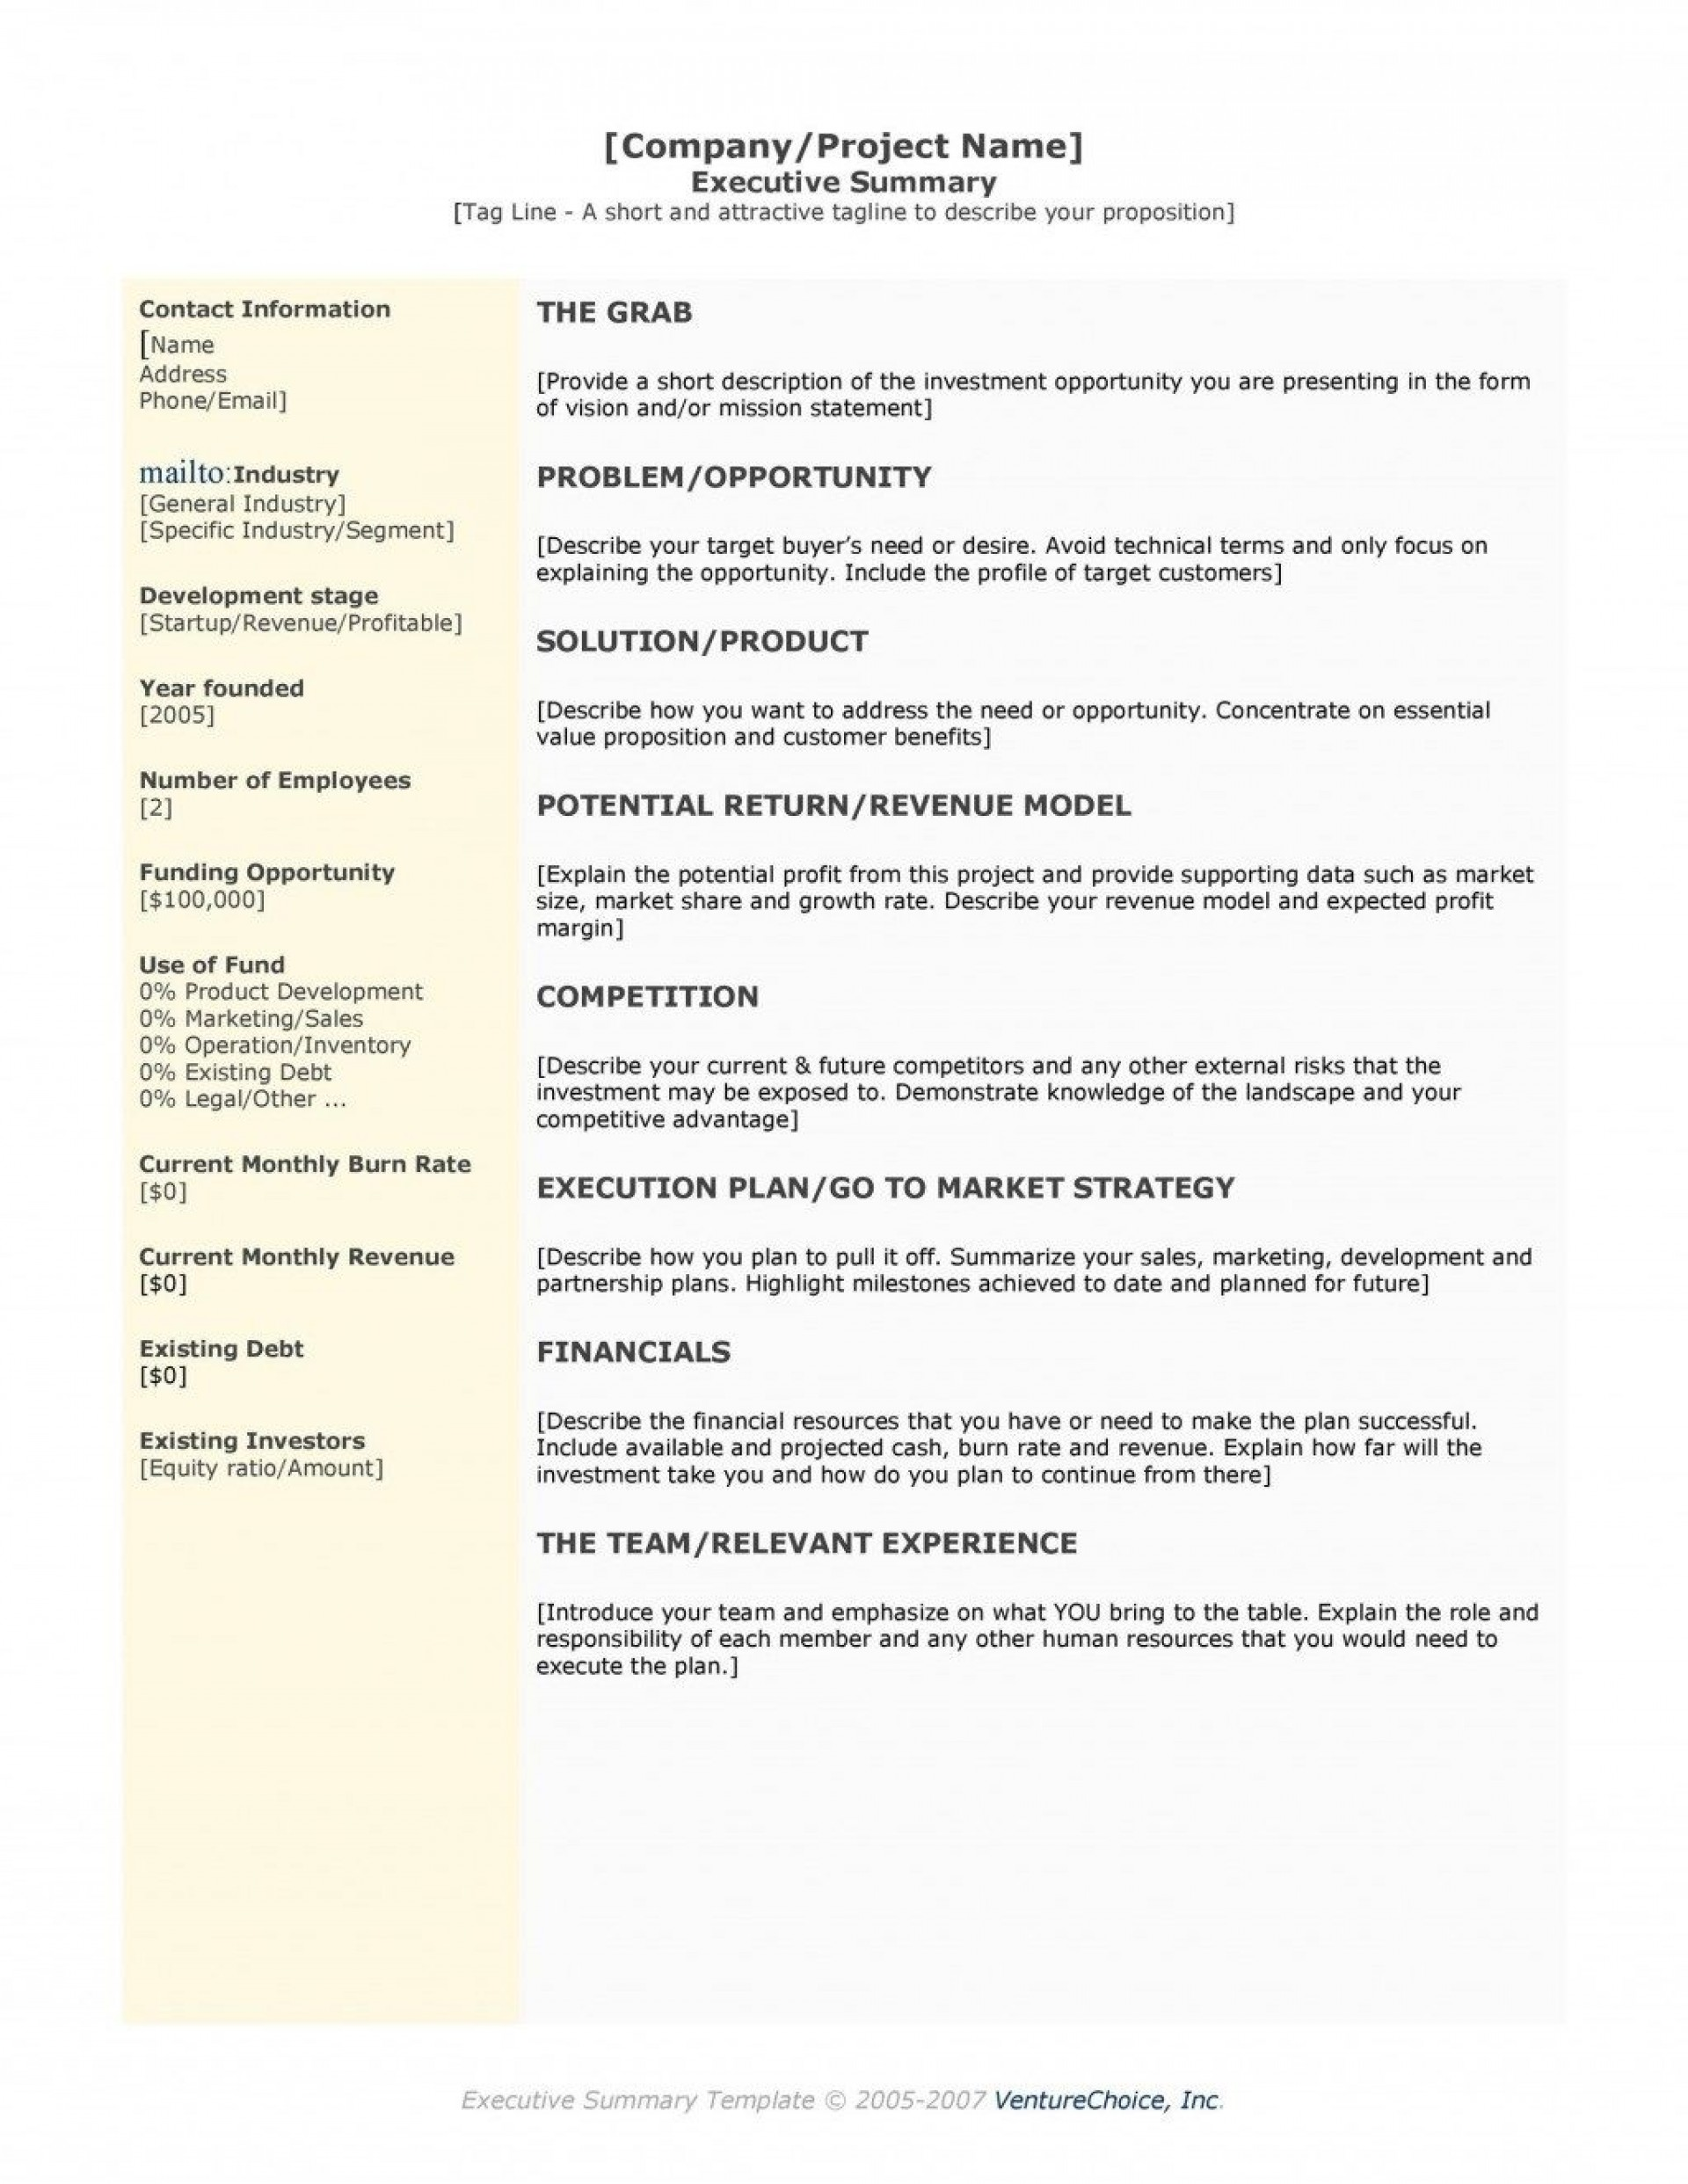 009 Staggering Busines Plan Executive Summary Template Word Design 1920